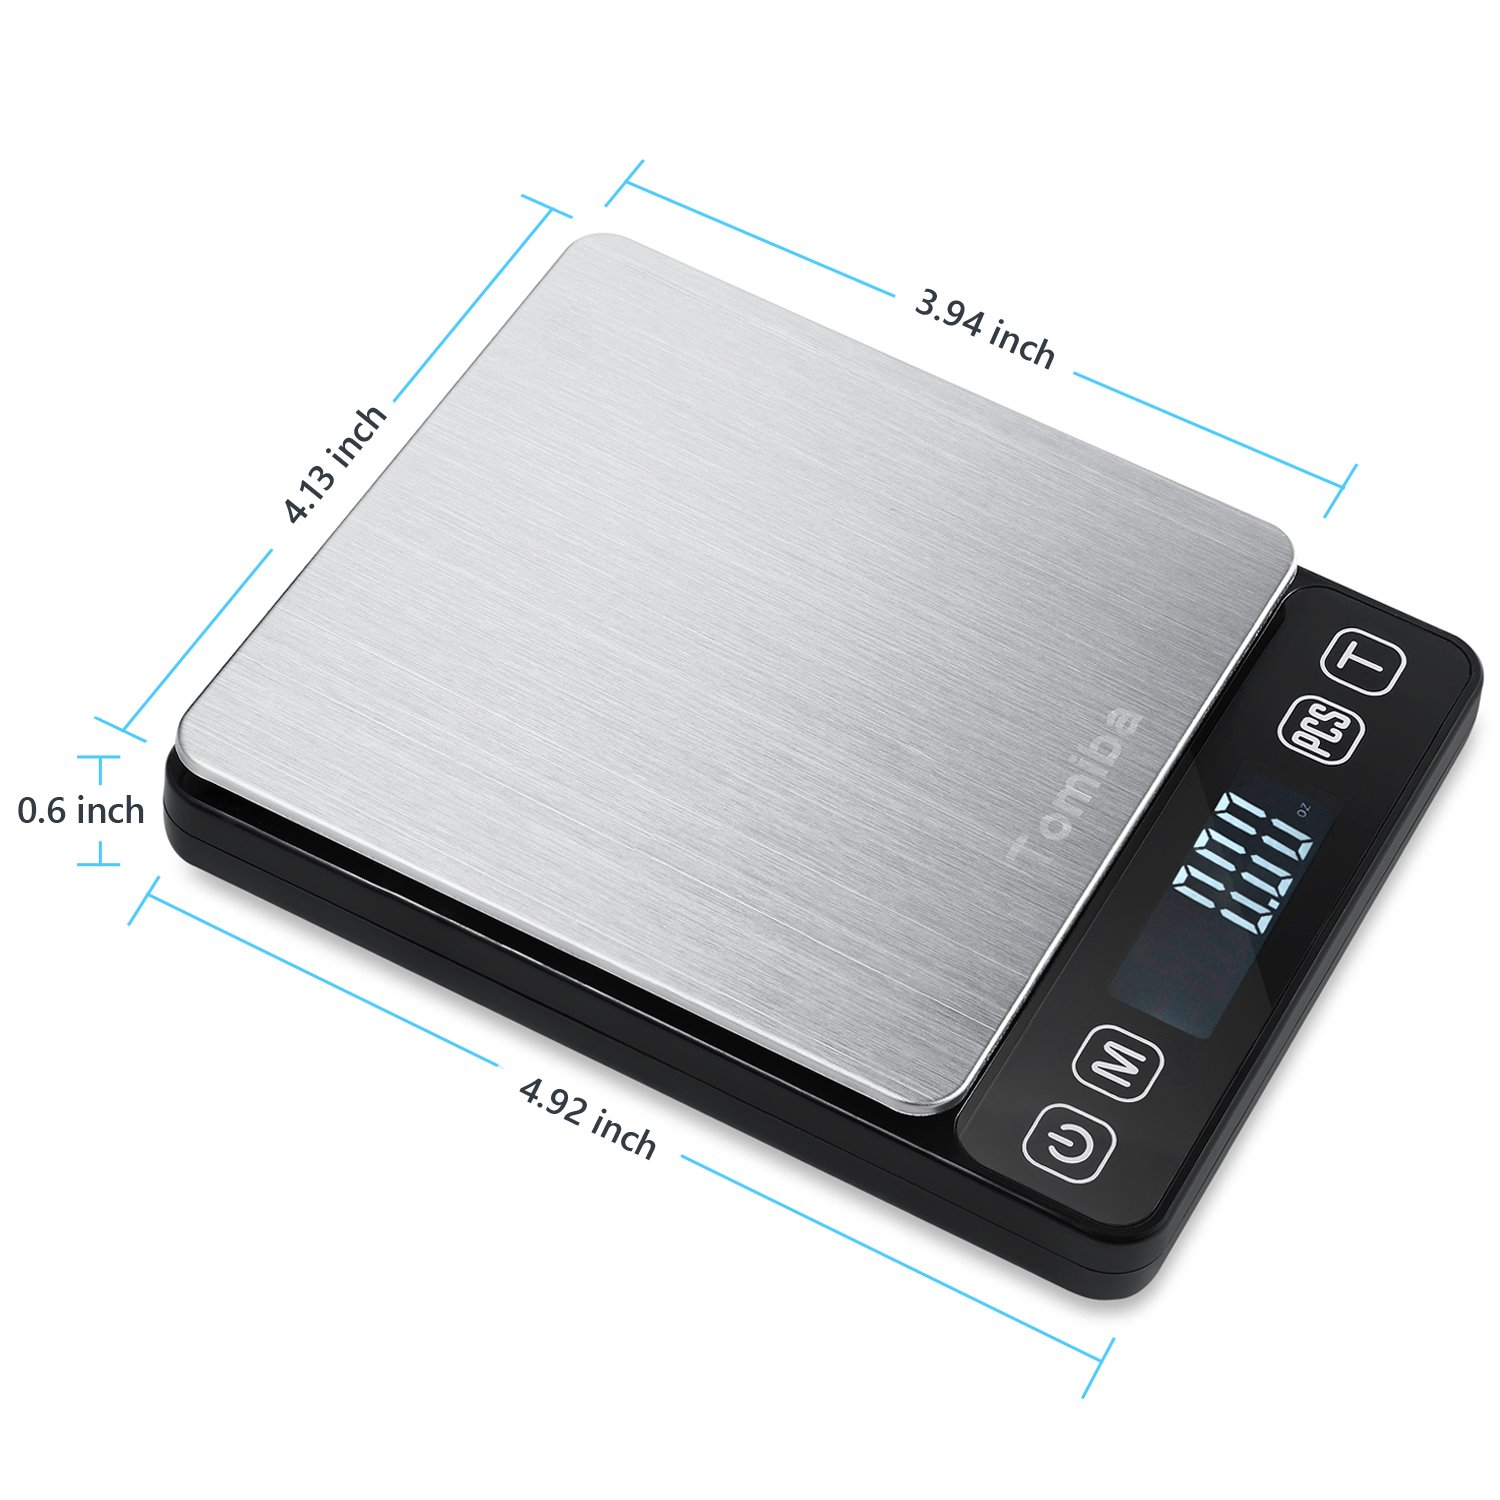 Digital Touch Pocket Scale 0.01oz - Tomiba 3000g Small Portable Electronic Precision Scale (0.1g) Resolution 2 AAA Batteries Included by Tomiba